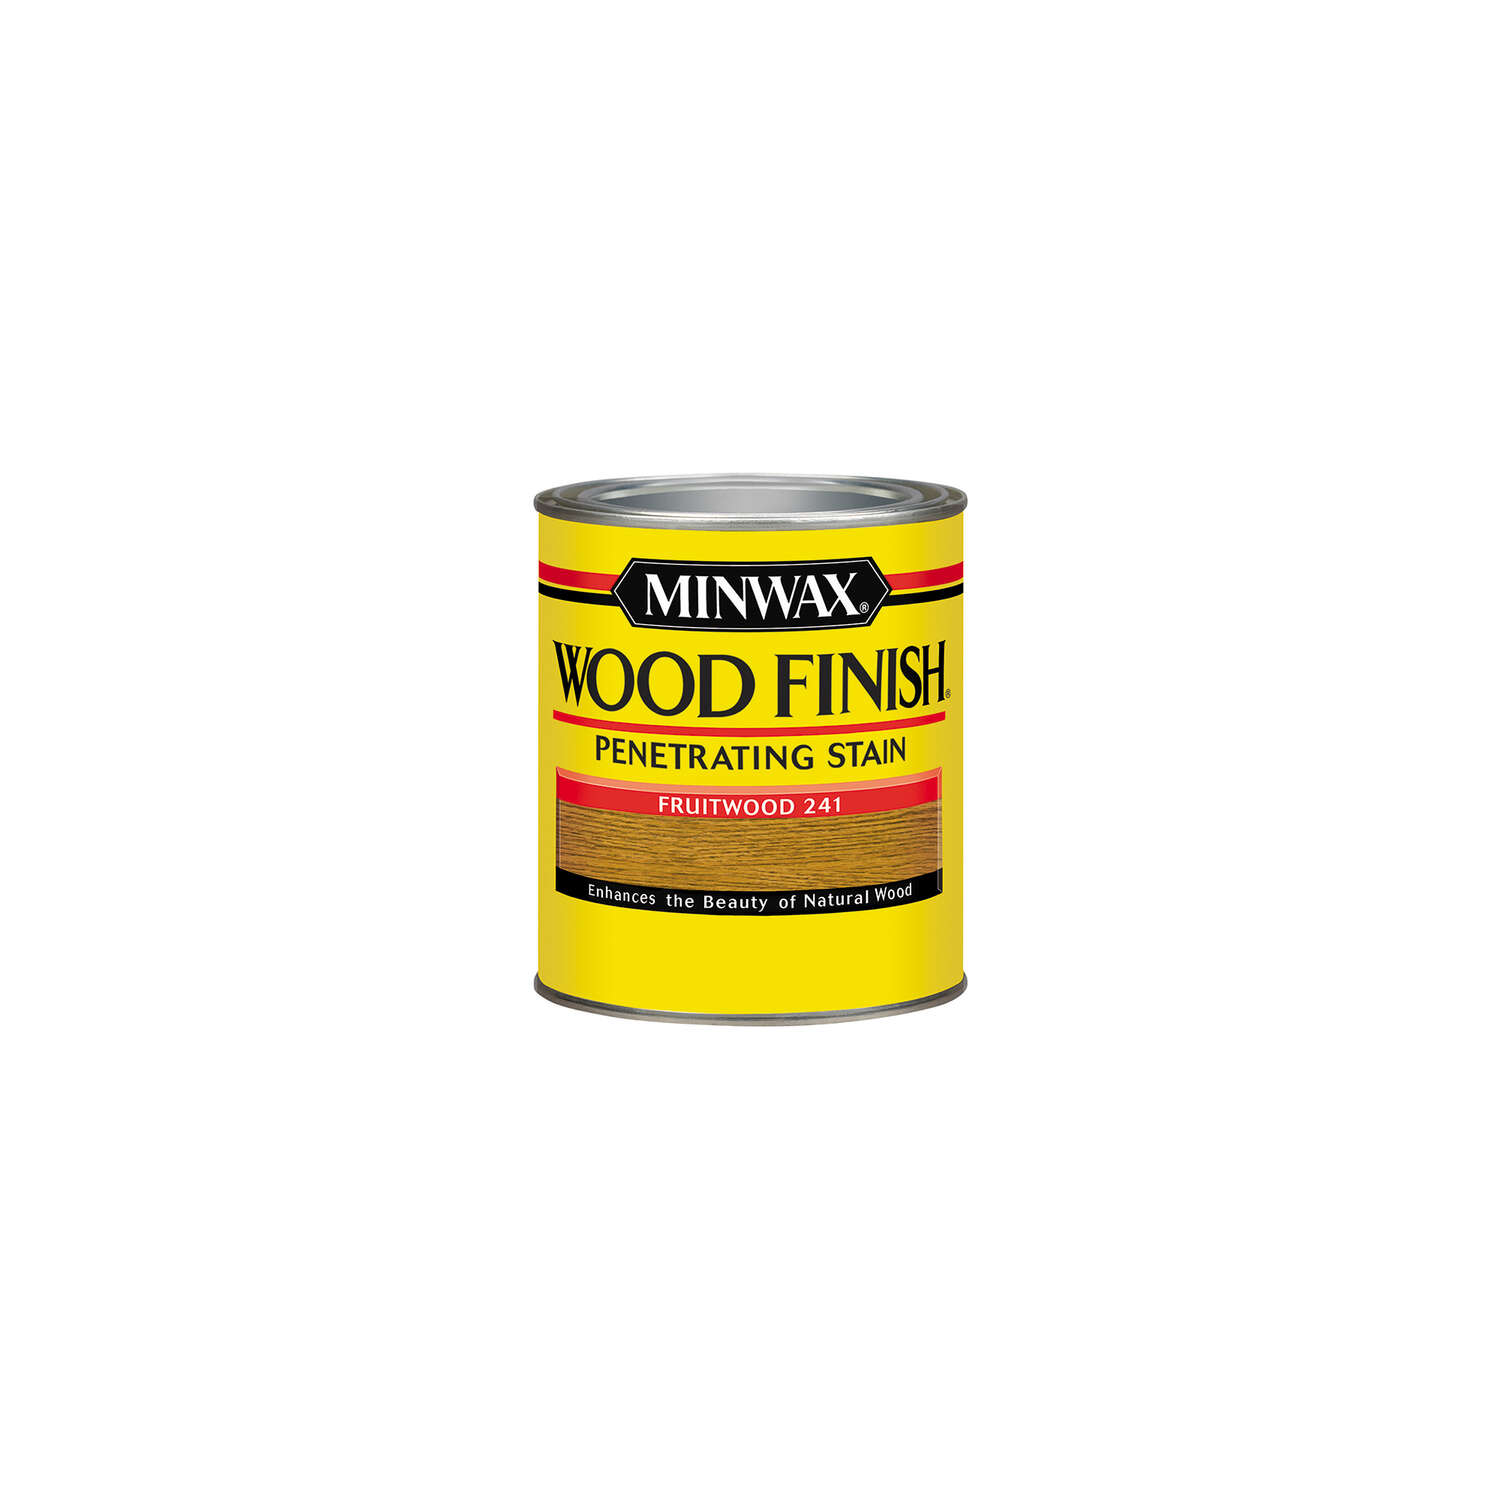 Minwax  Wood Finish  Semi-Transparent  Fruitwood  Oil-Based  Wood Stain  0.5 pt.